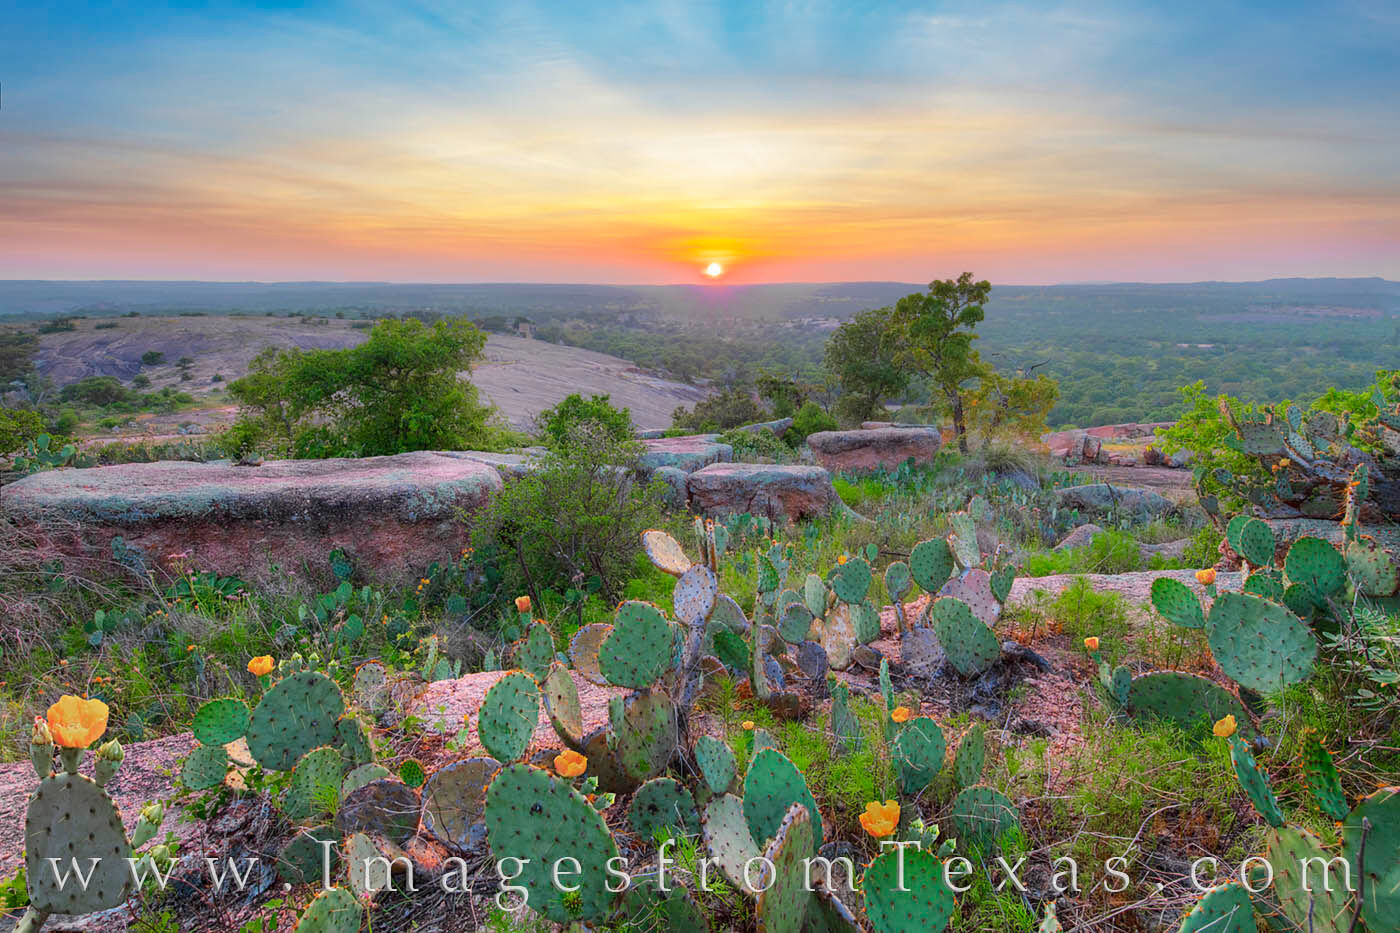 enchanted rock, prickly pear, sunset, wildflowers, hill country, rugged, granite, hiking texas, exploring texas, photo